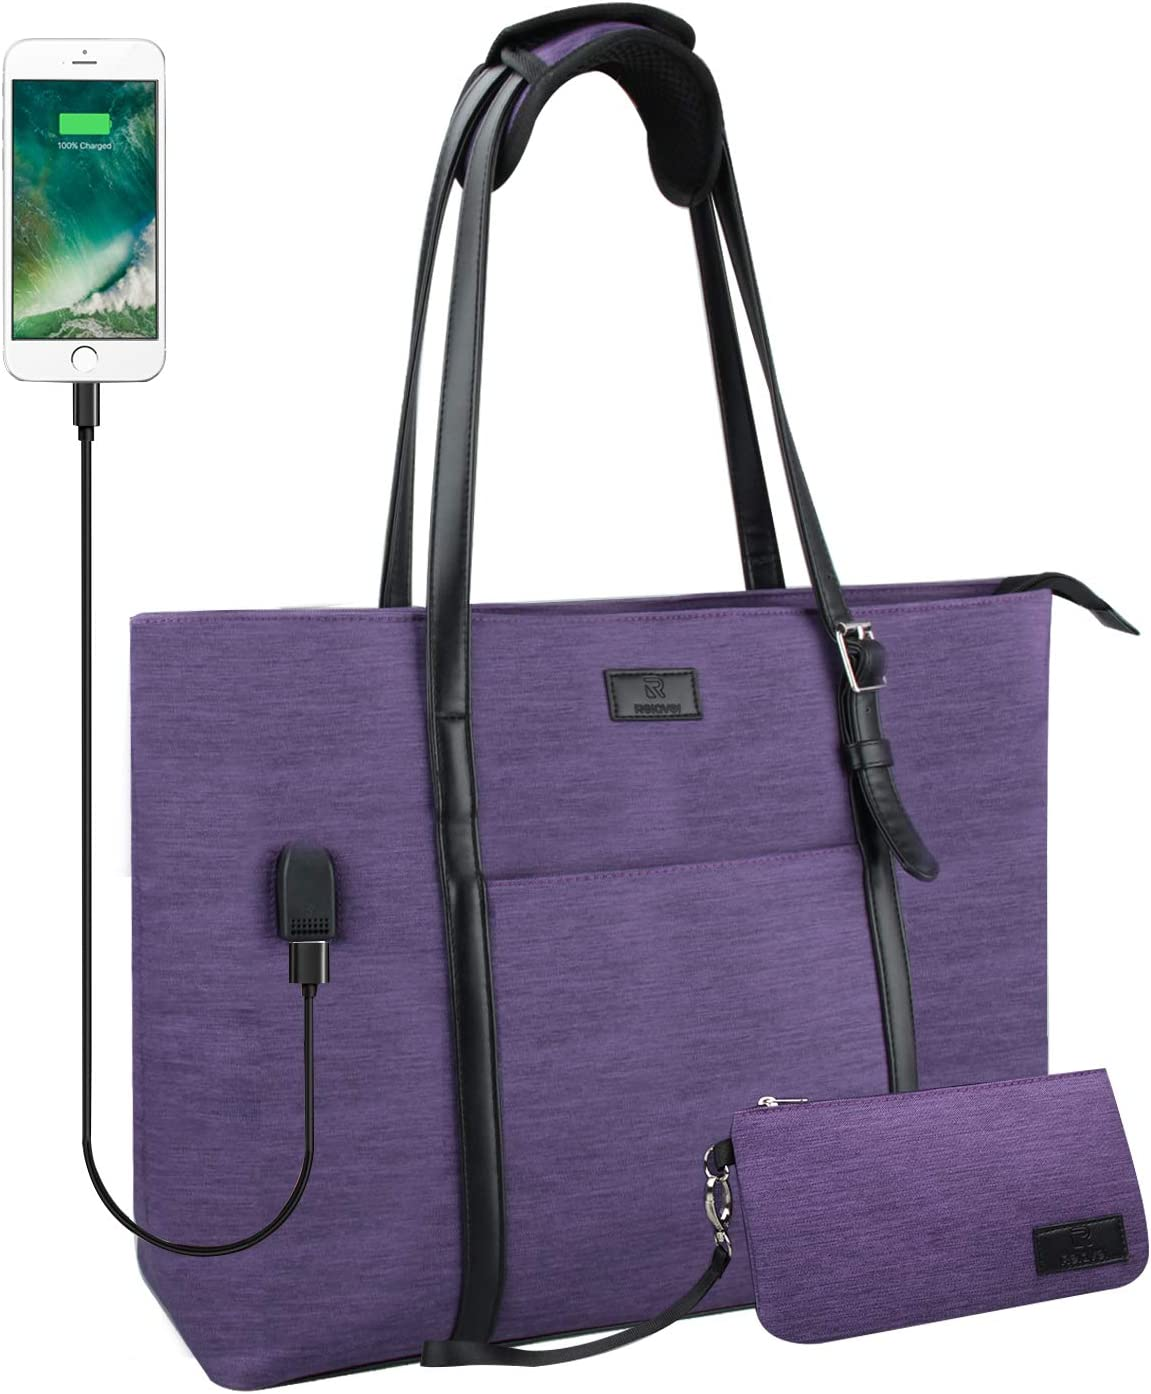 USB Laptop Tote Bag,Chomeiu Woman 15.6 inch Laptop Organizer Bag Teacher Work Purse (Purple)